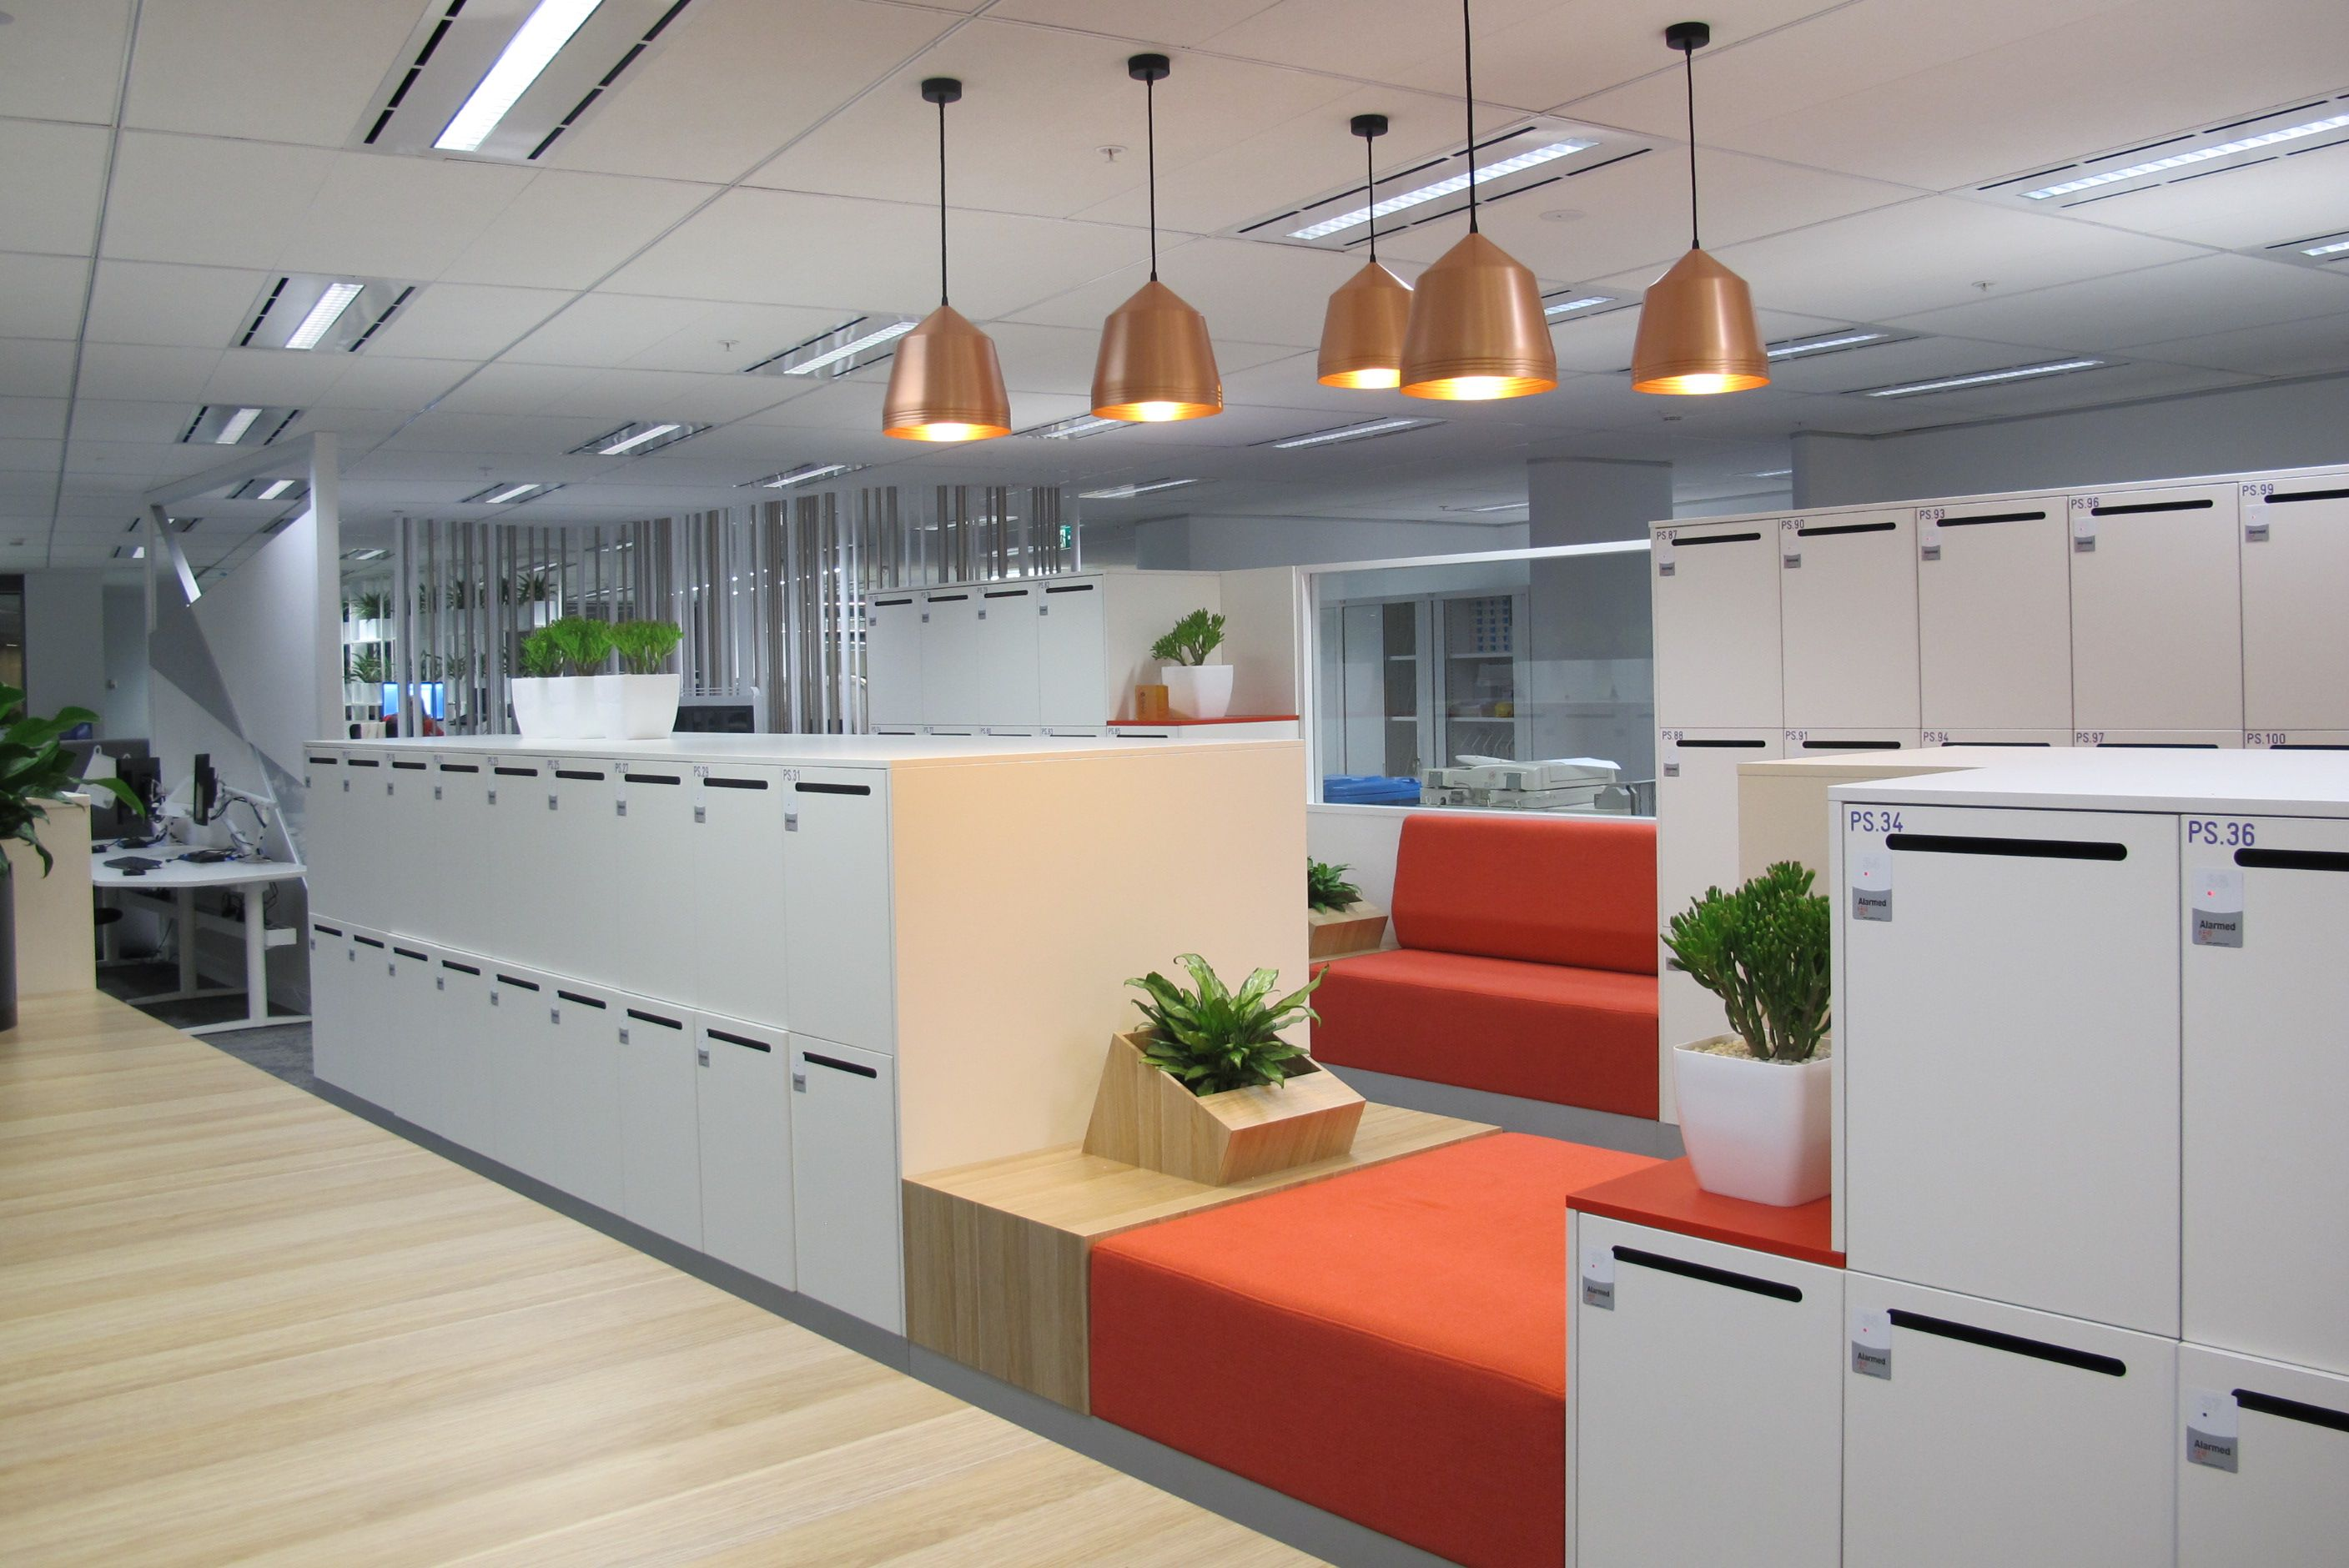 Locker area agile working workplace of the future - Commercial interior design codes ...